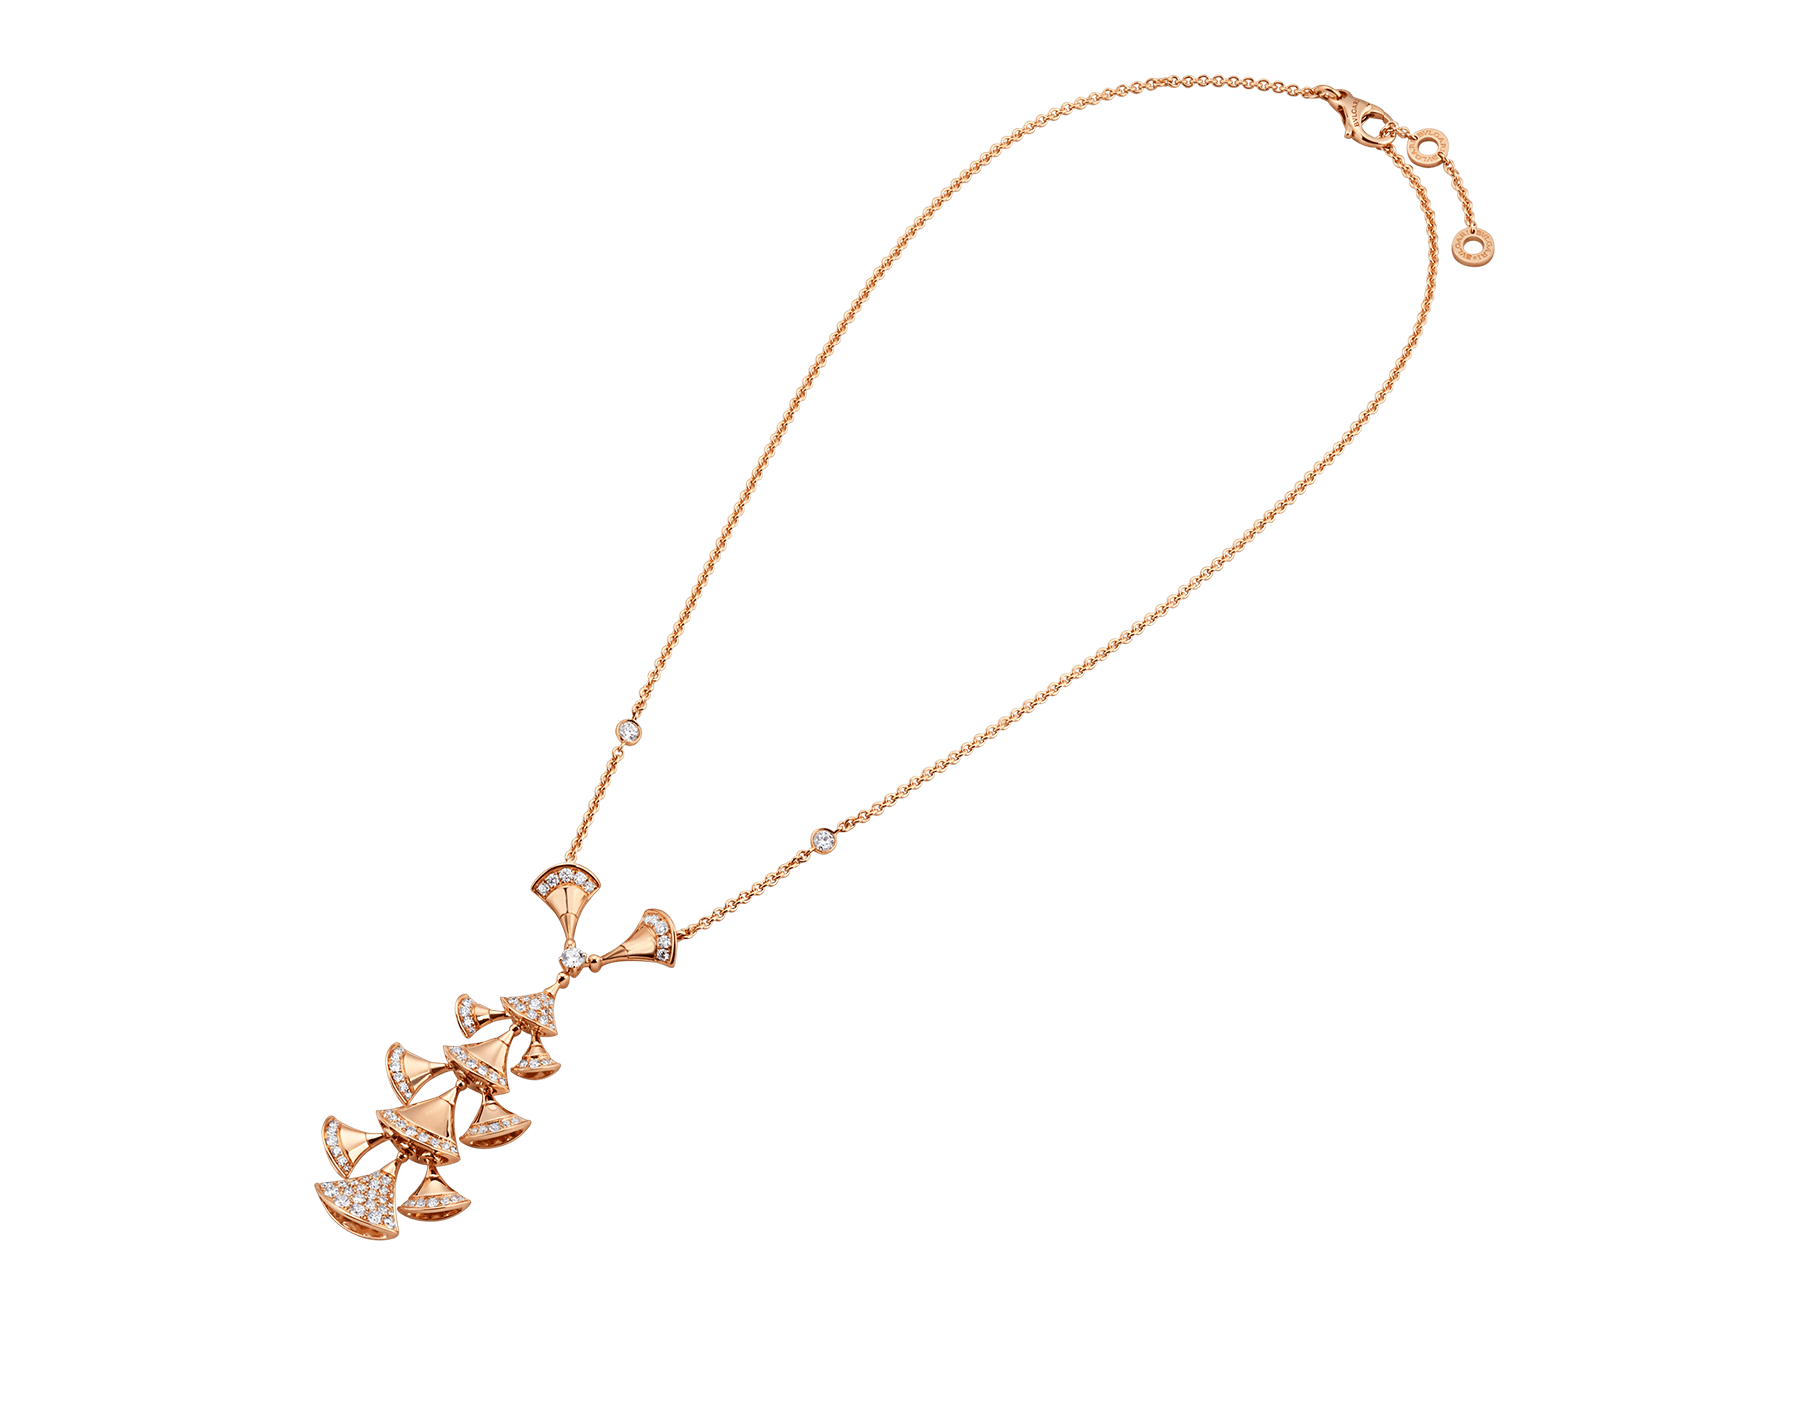 DIVAS' DREAM necklace in 18 kt rose gold set with diamonds and pavé diamonds. 352607 image 2